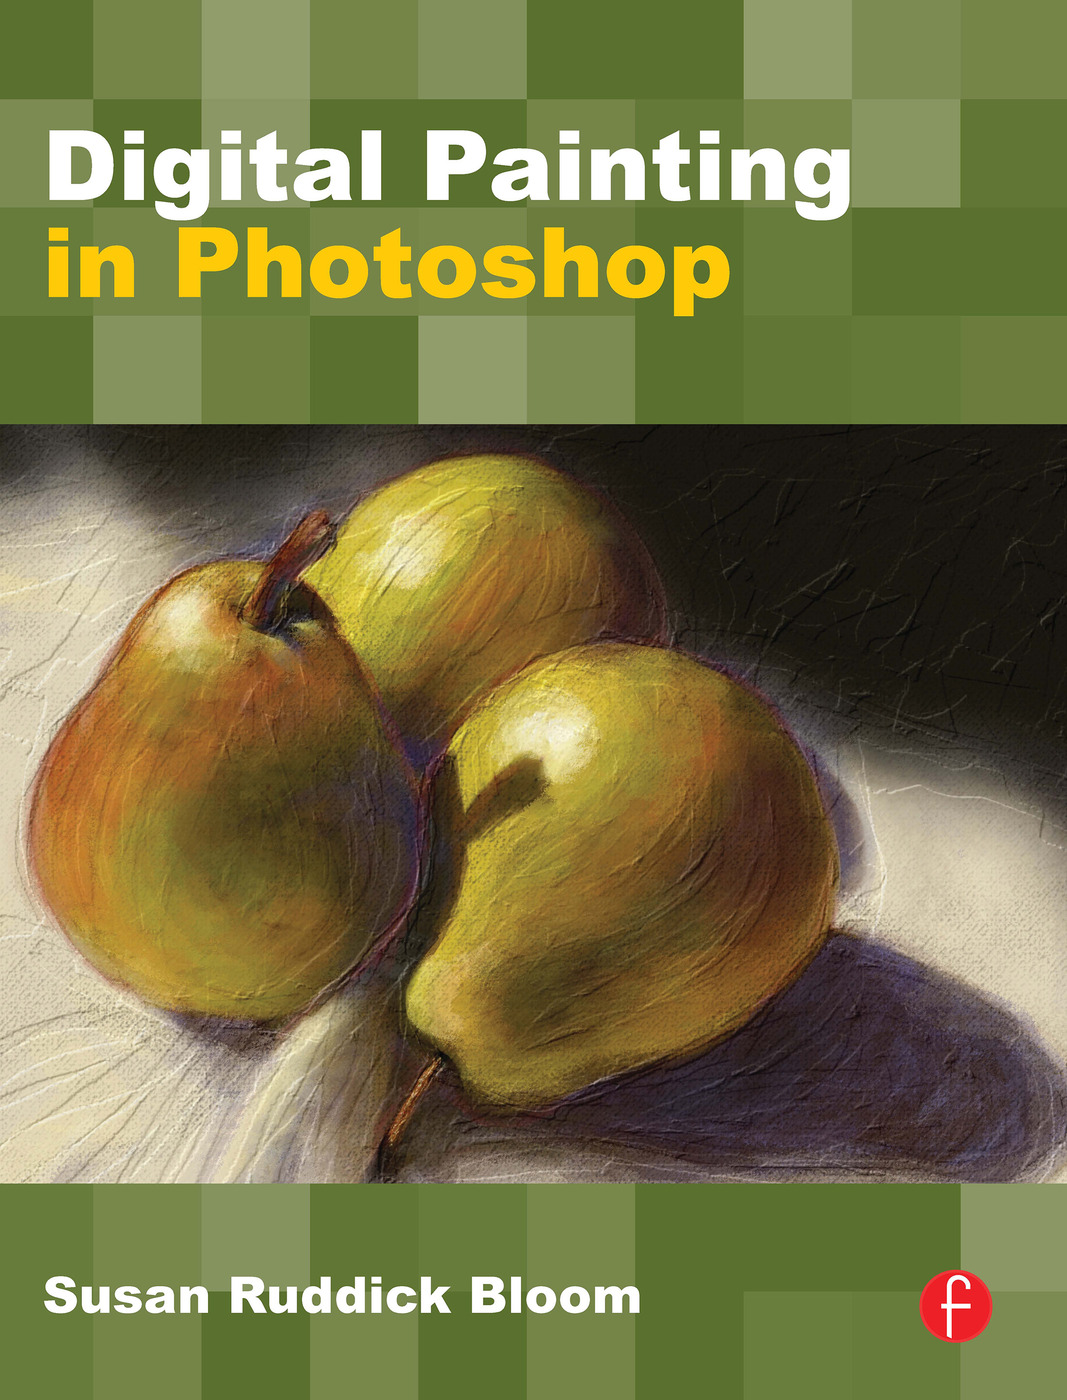 Digital Painting in Photoshop book cover